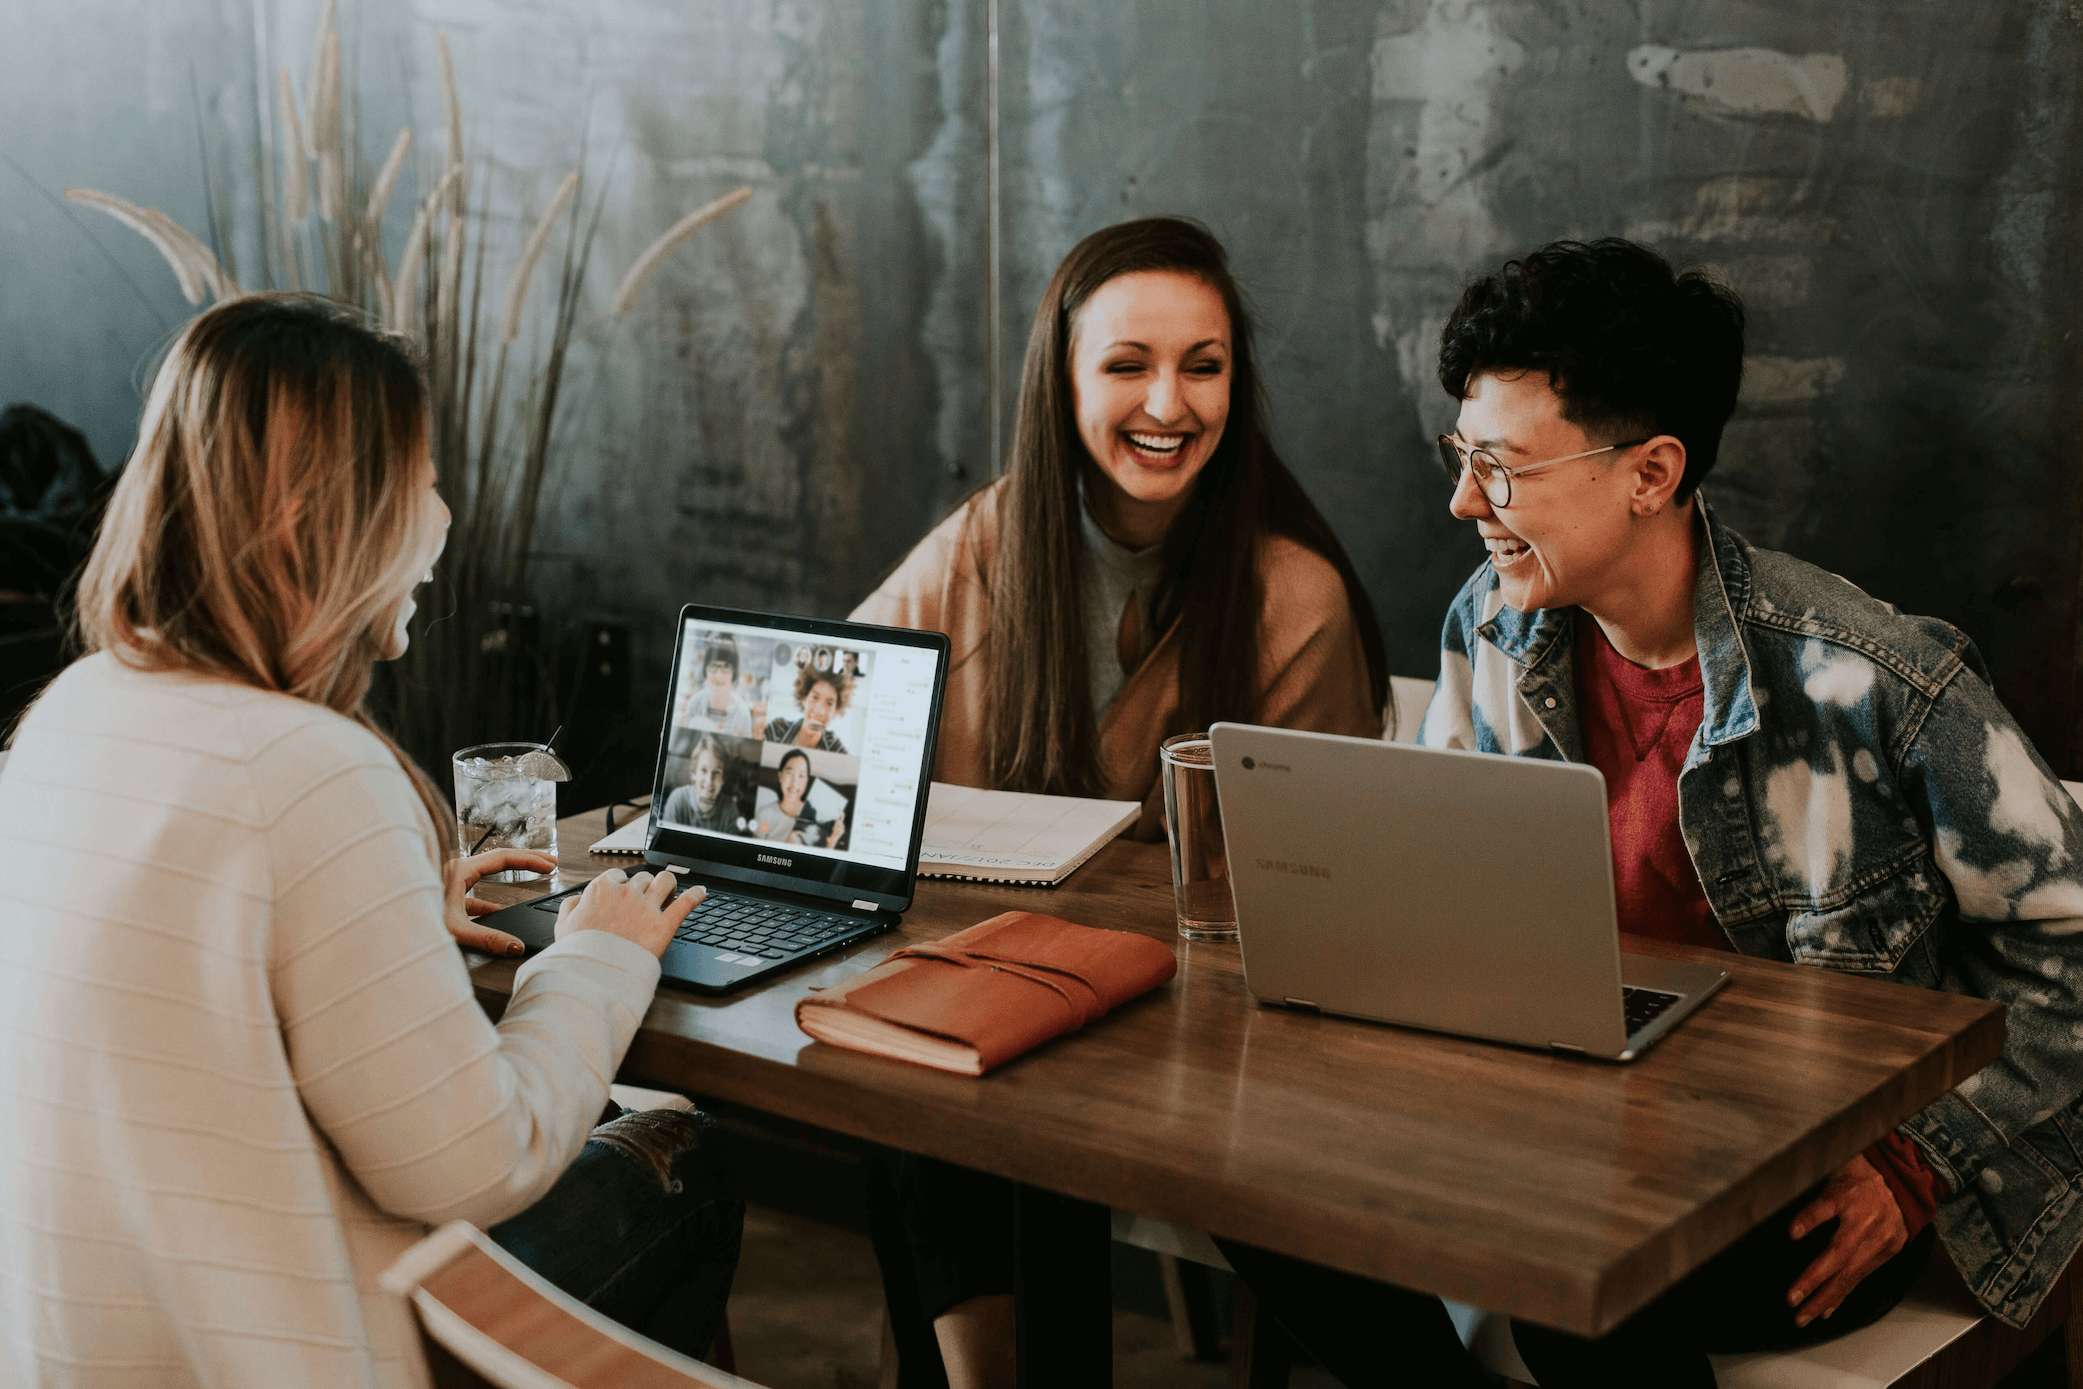 Ice-breakers and energizers for remote meetings